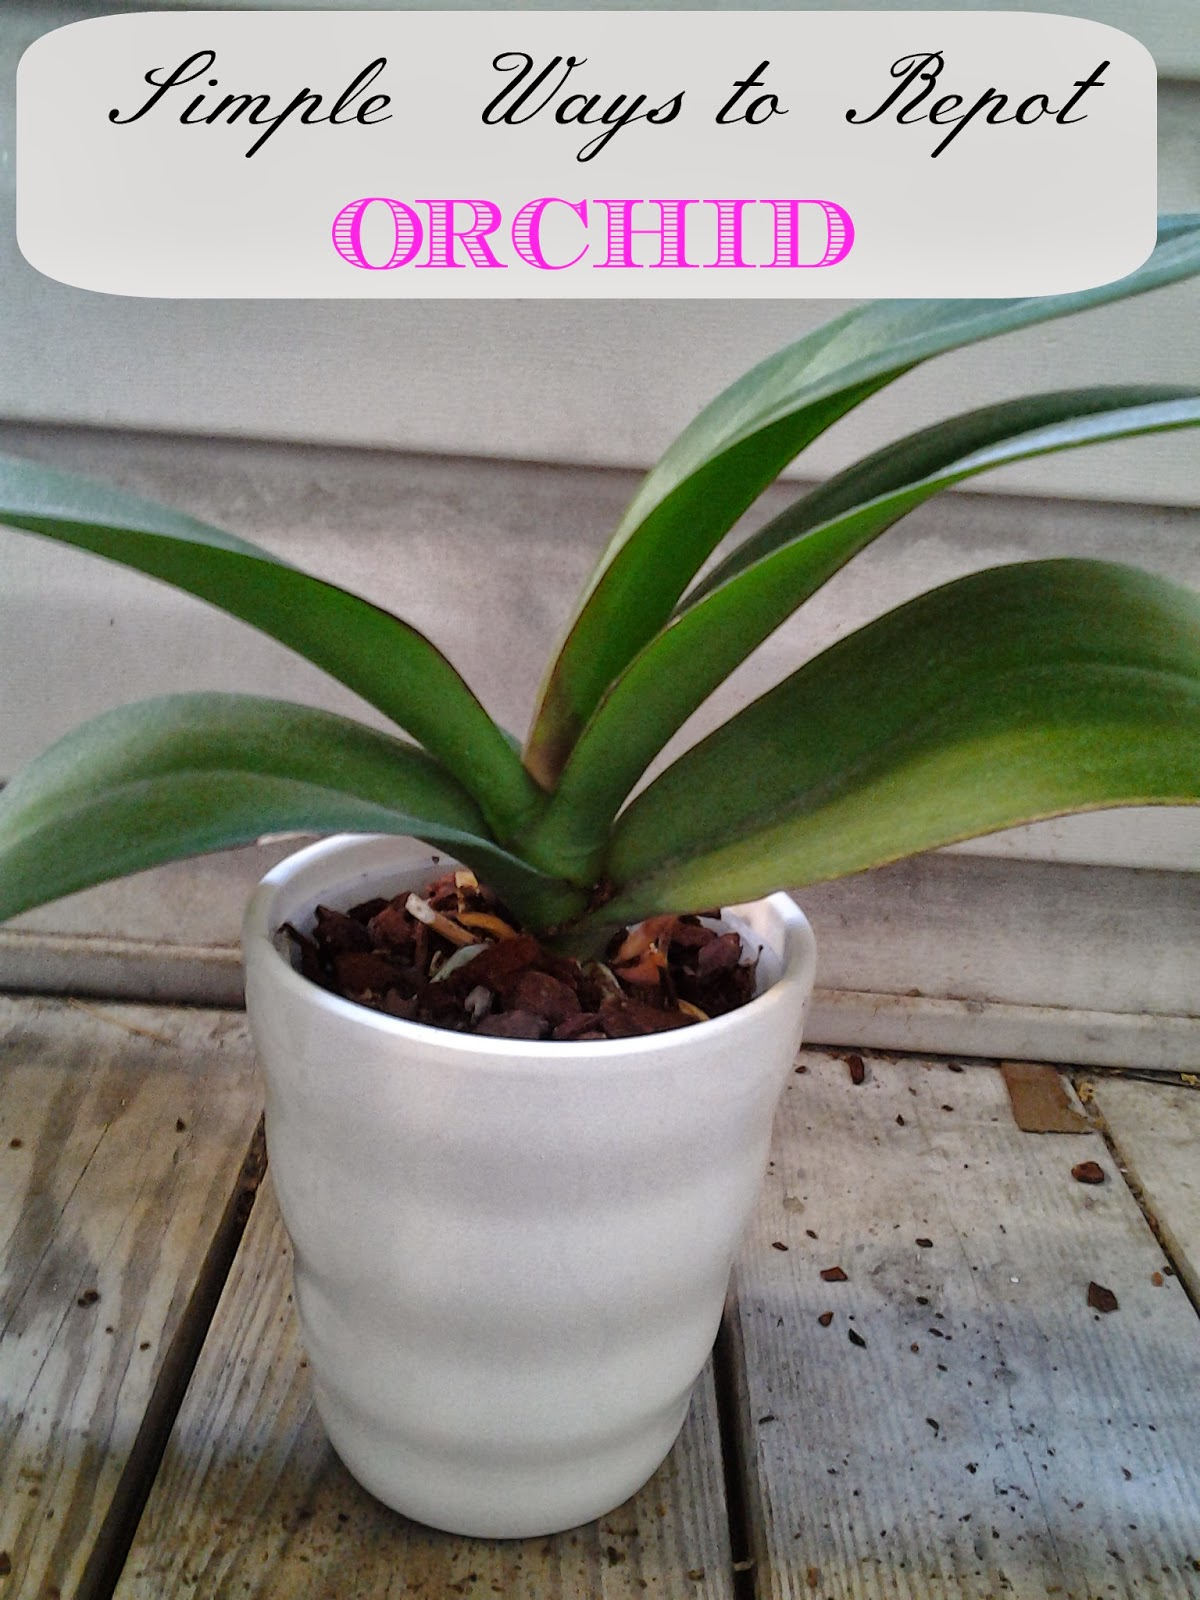 Life Between Potato And Rice Simple Ways To Repotting Orchid